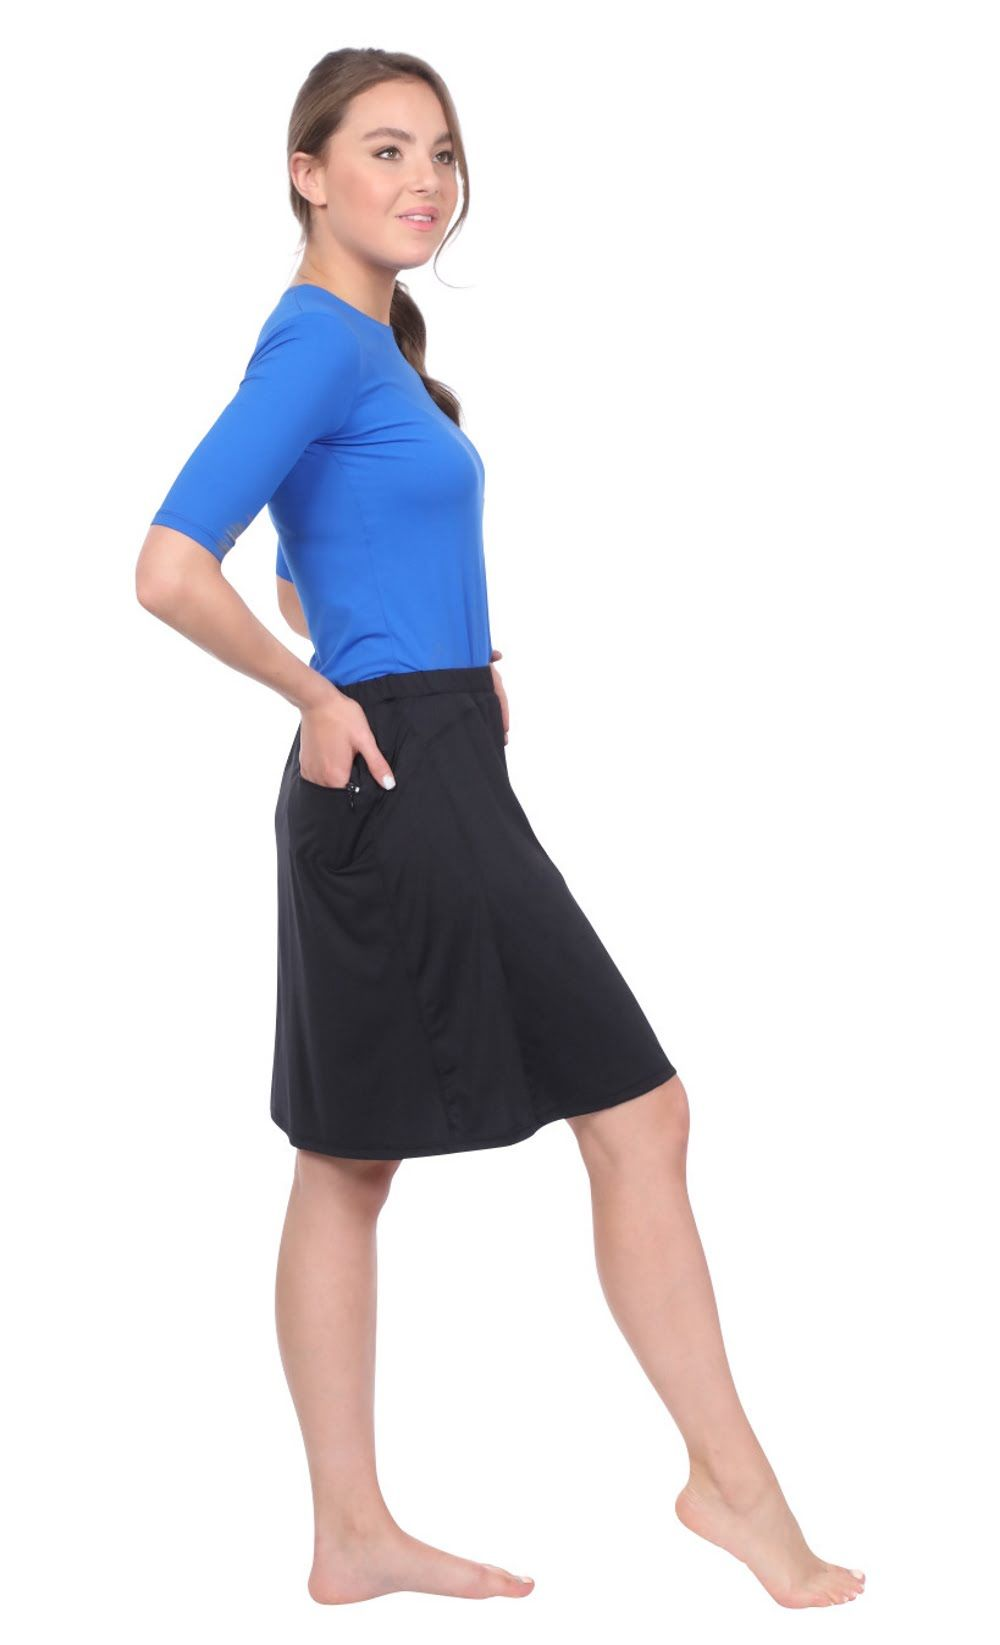 1c1009d64b029 Running Skirt / Sports Skirt With Spandex Shorts For Women